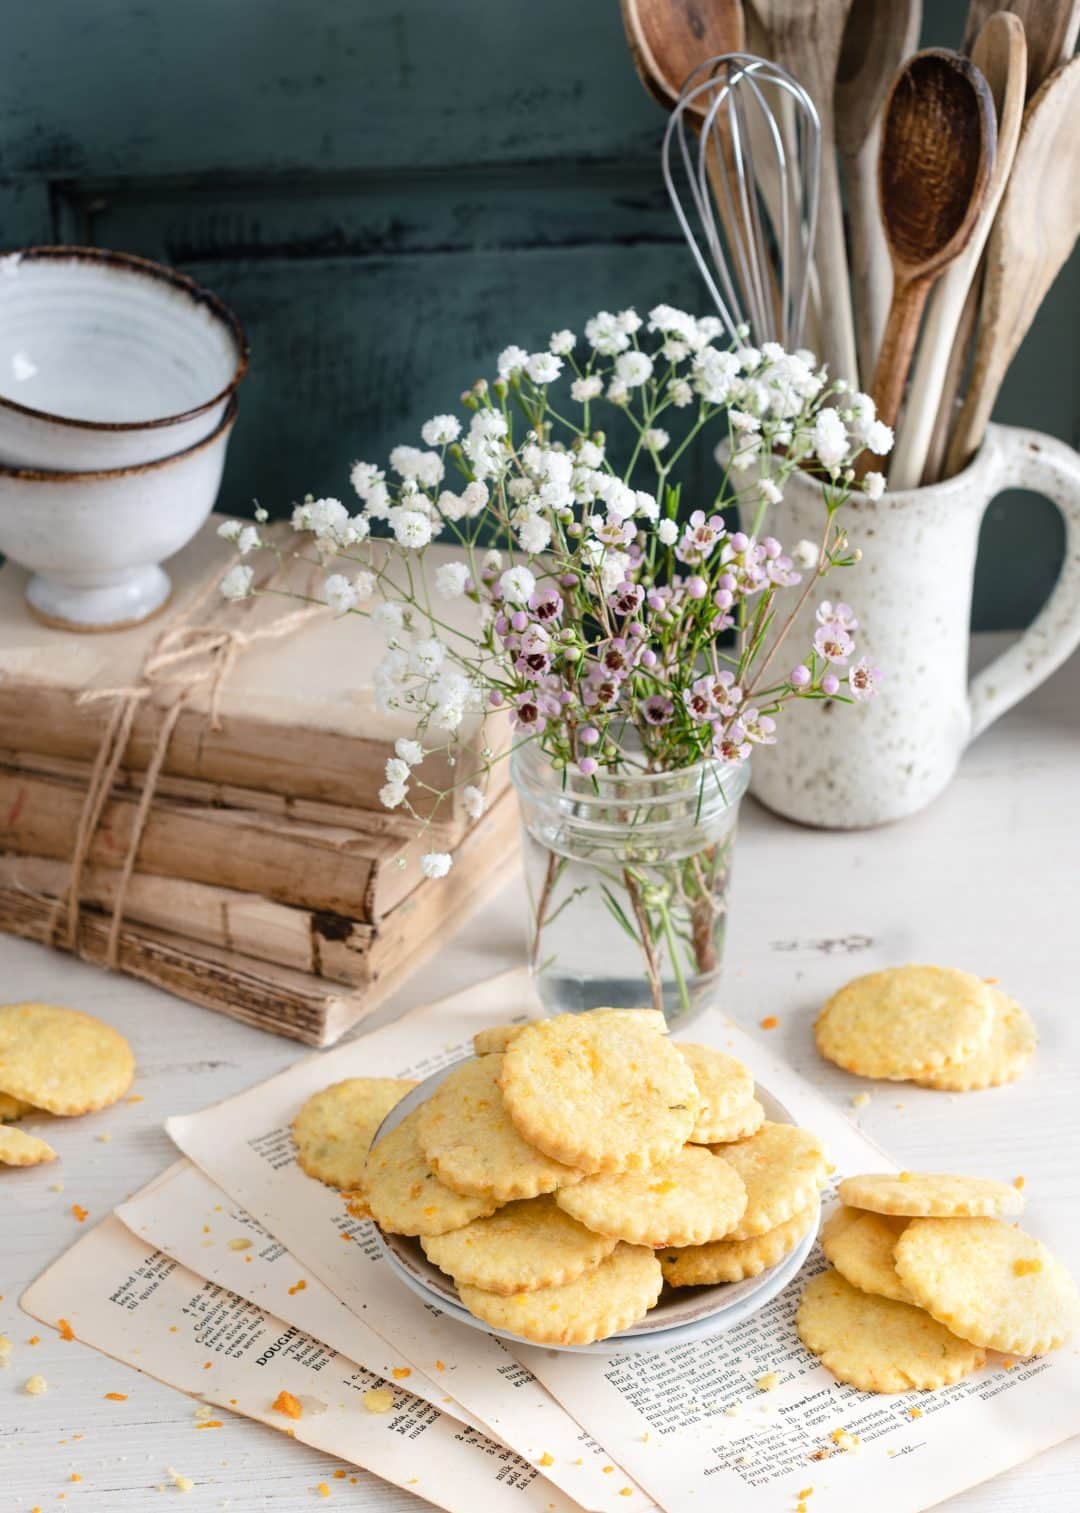 Apricot Basil Shortbread Cookies served with tea